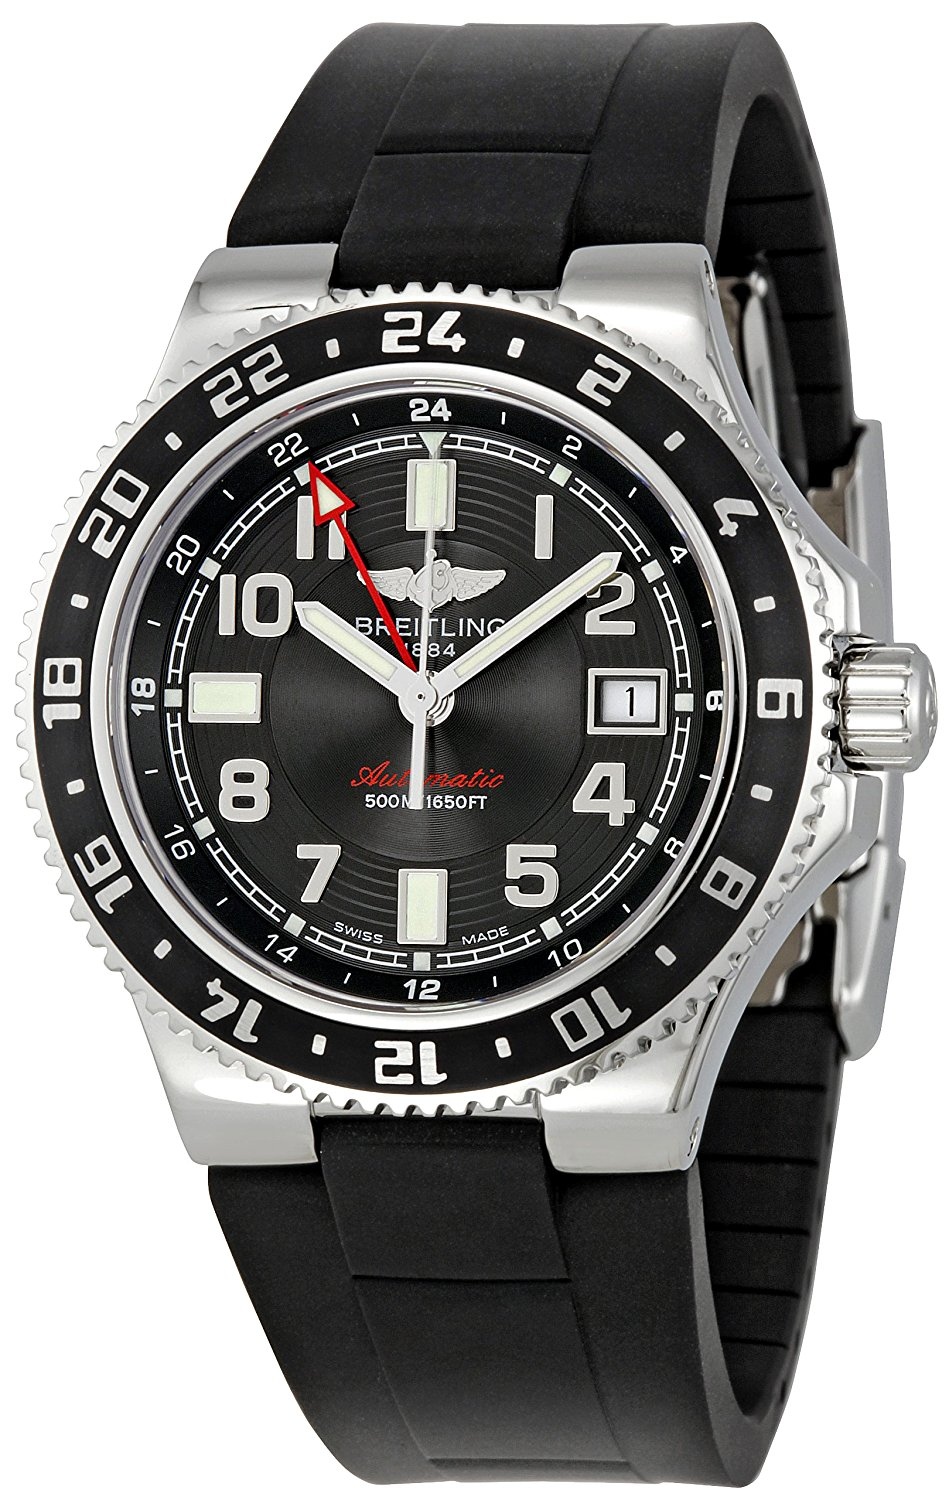 1bcac8c7c28 Get Quotations · Breitling Men s A3238011 BA38BKRD Black Dial Superocean GMT  Watch